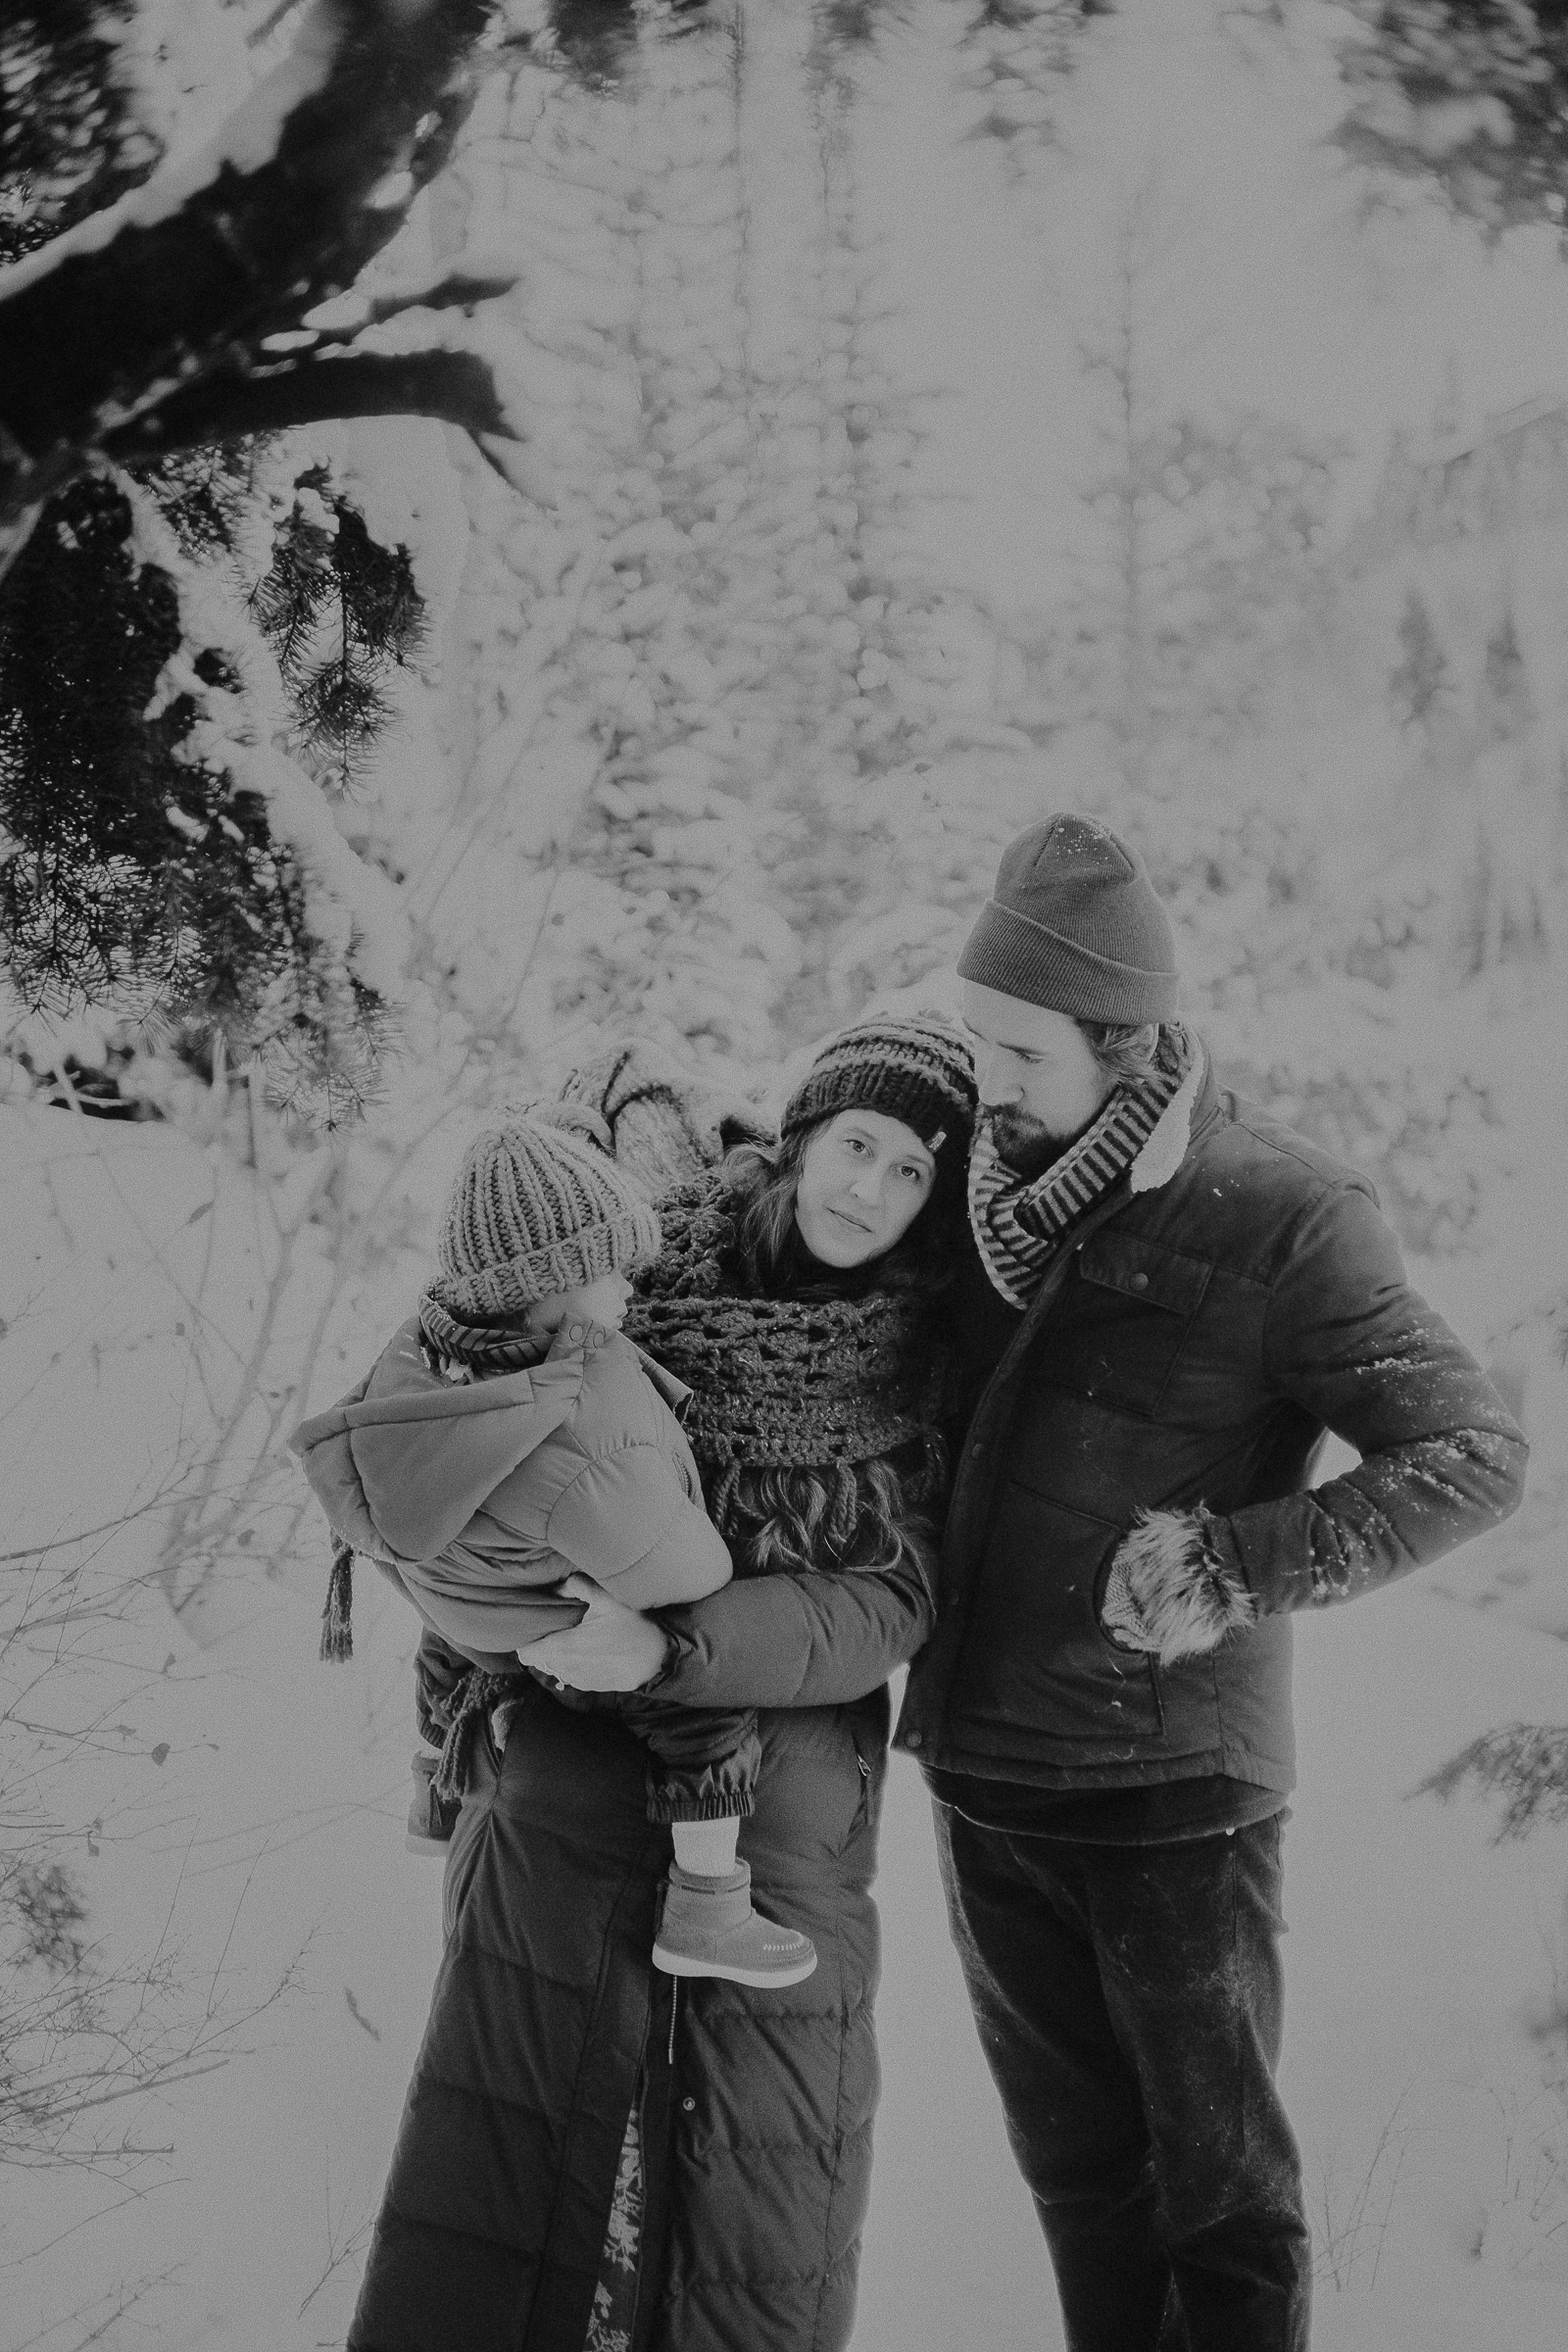 Family picture in snowy mountains